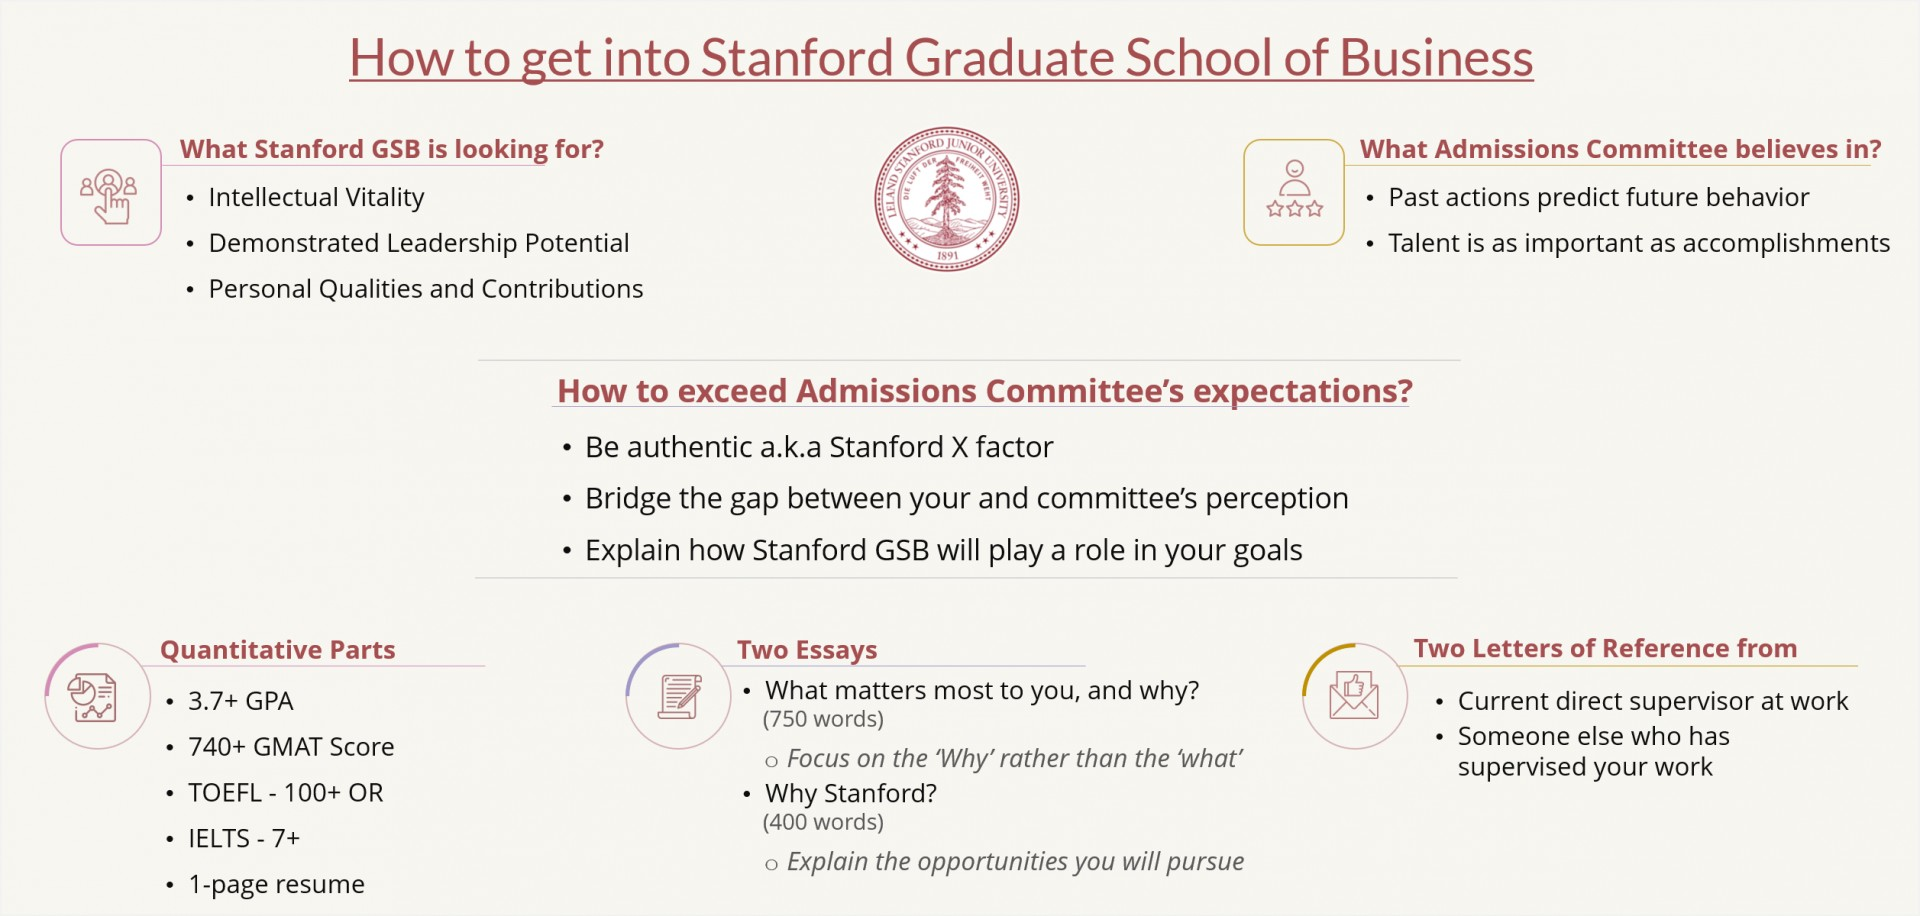 002 How To Get Into Stanford Gsb Mba Program Essay Top Examples Essays Samples 1920